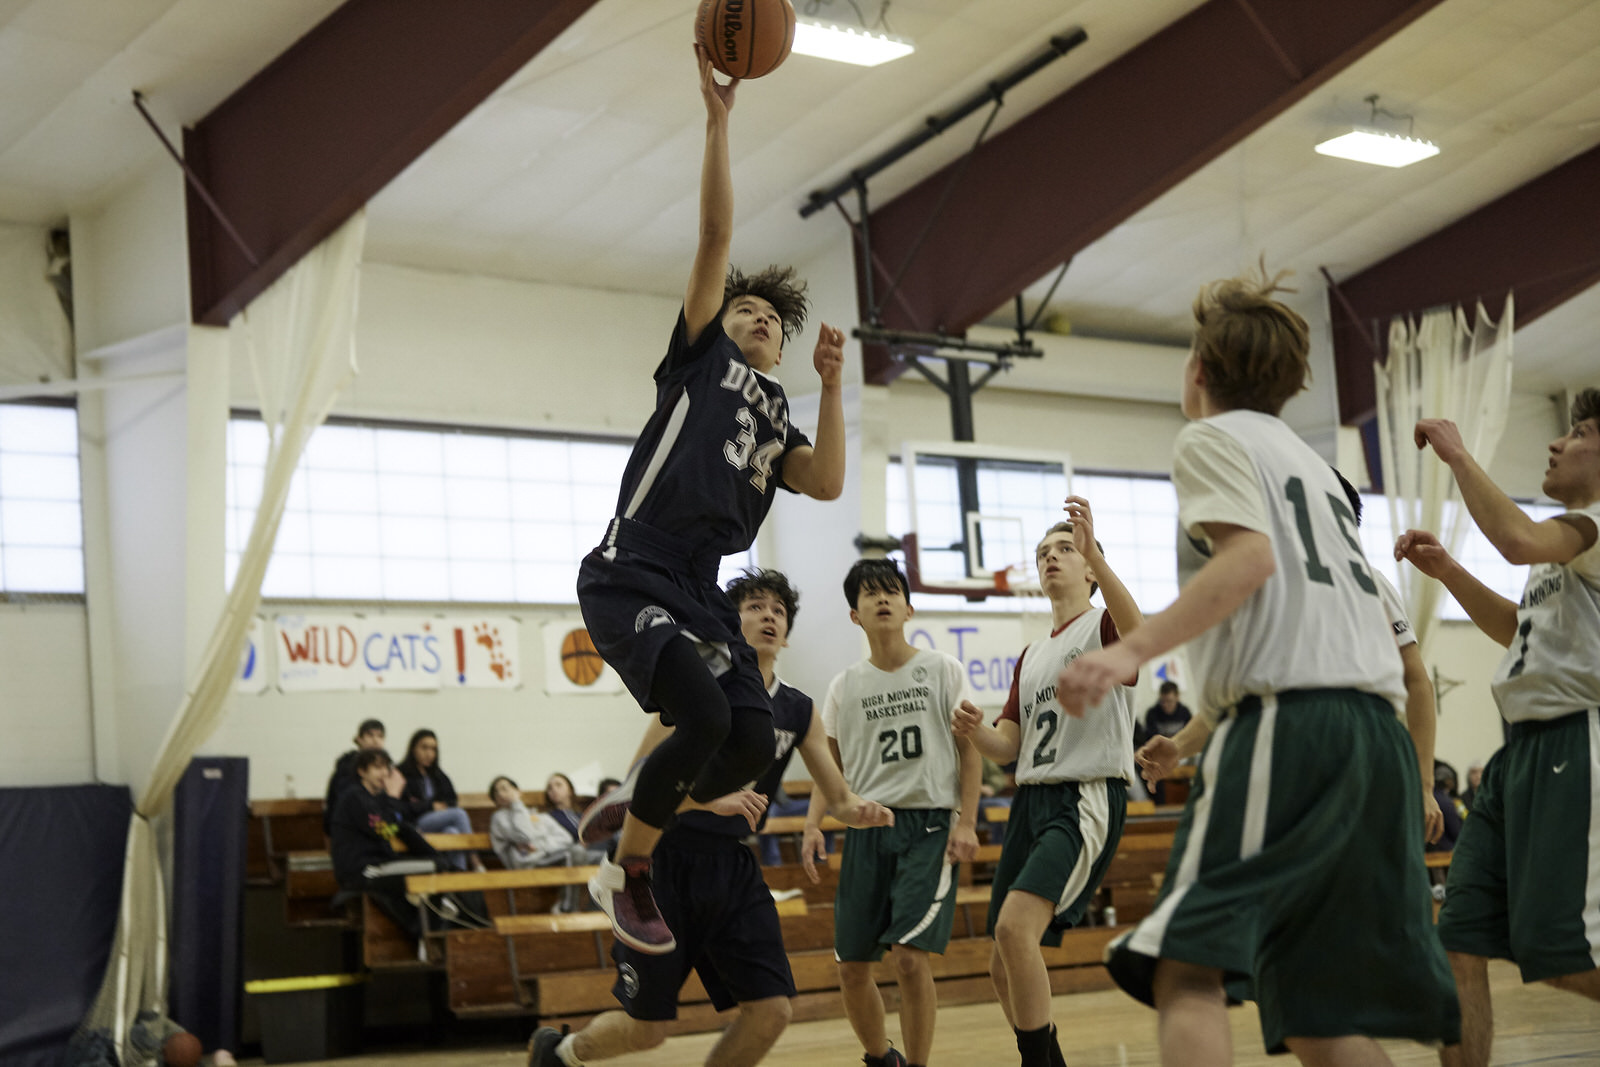 Dublin JV Boys Basketball vs High Mowing School - Jan 26 2019 - 0209.jpg